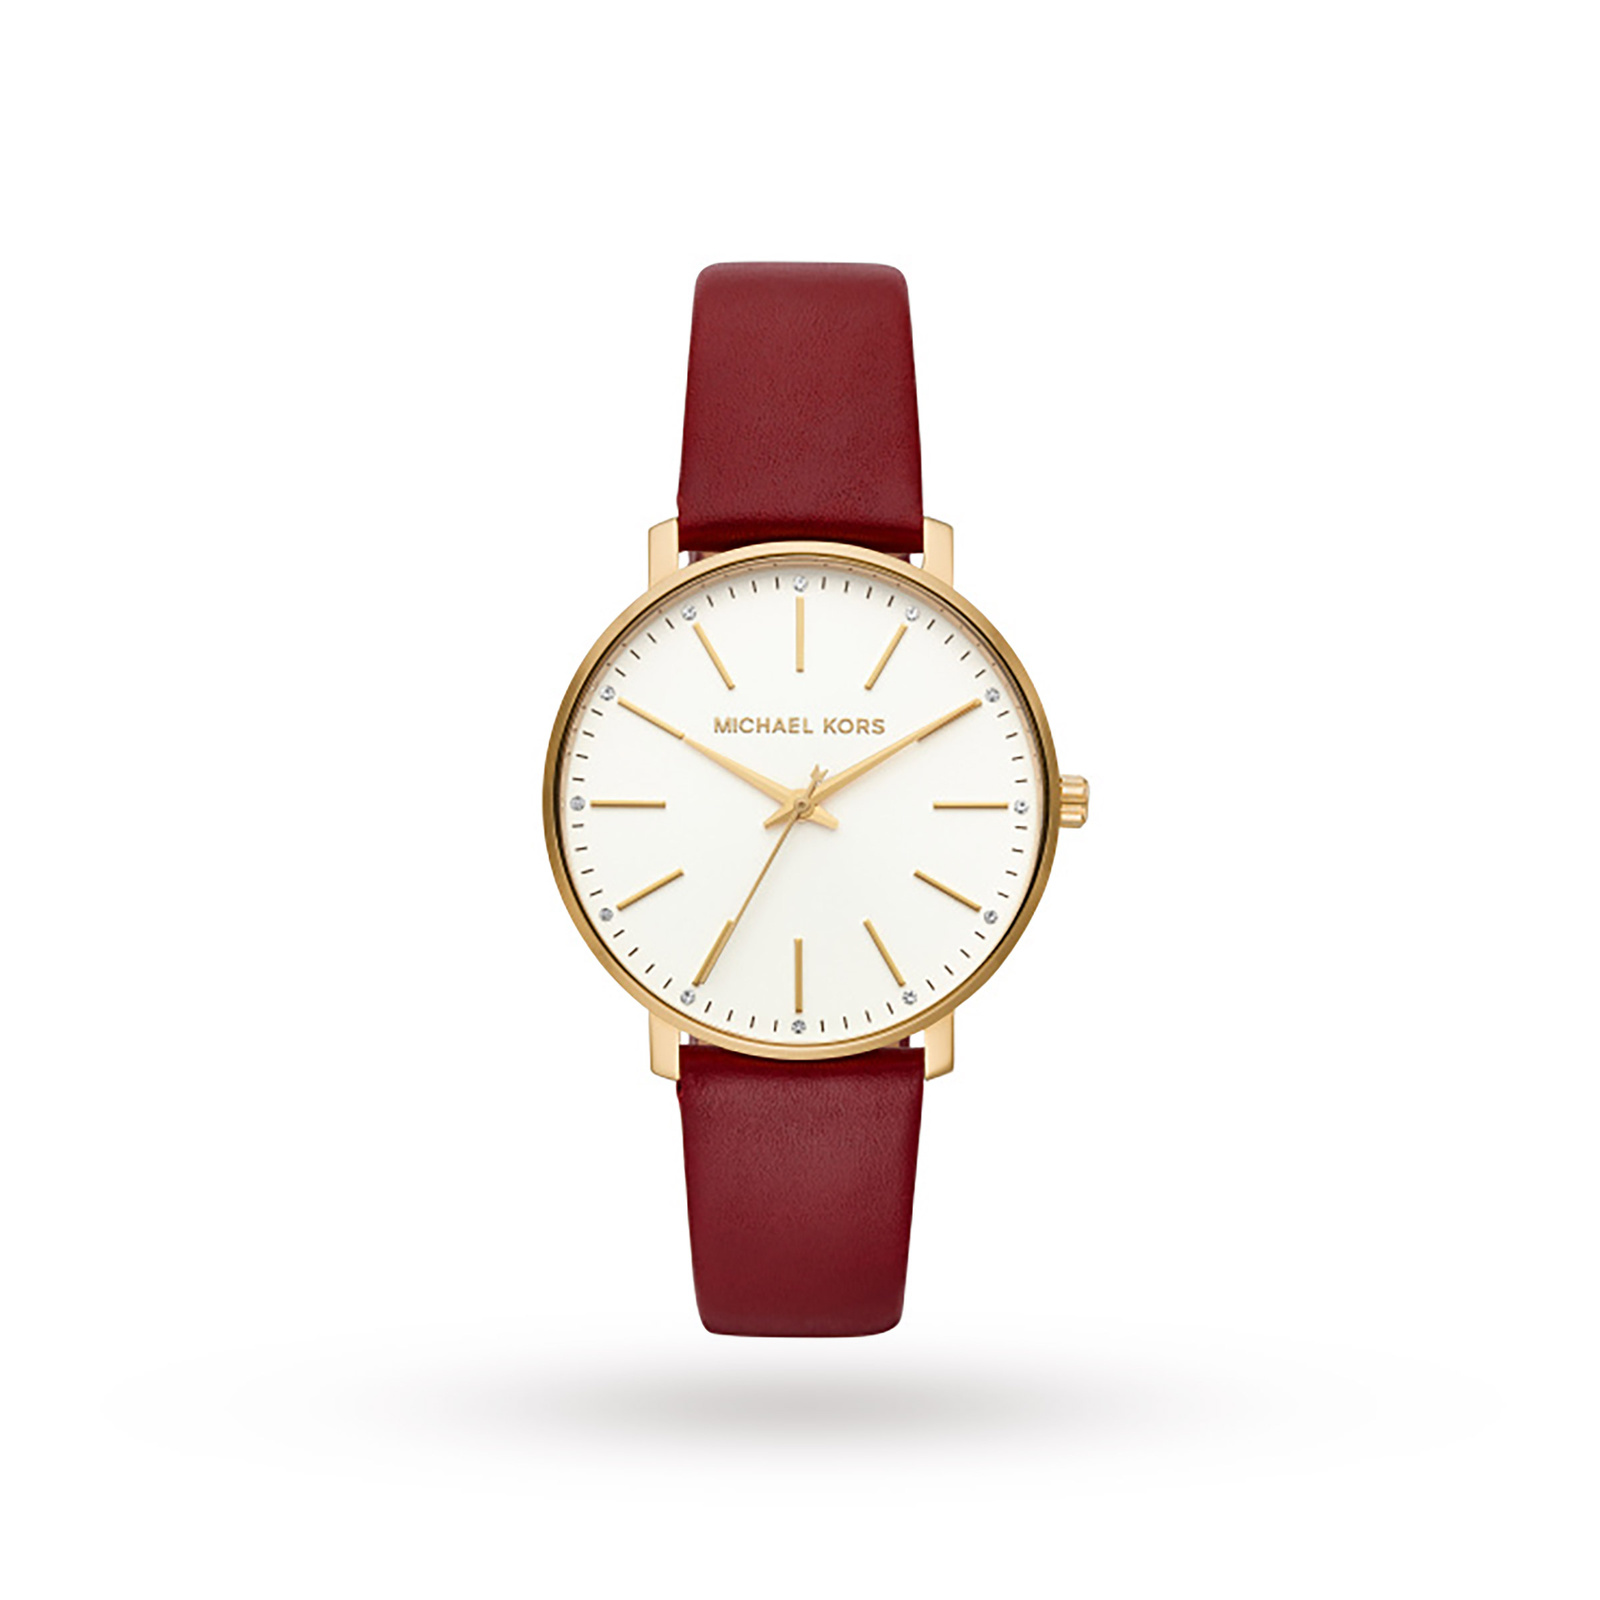 Michael Kors Ladies Watch MK2749